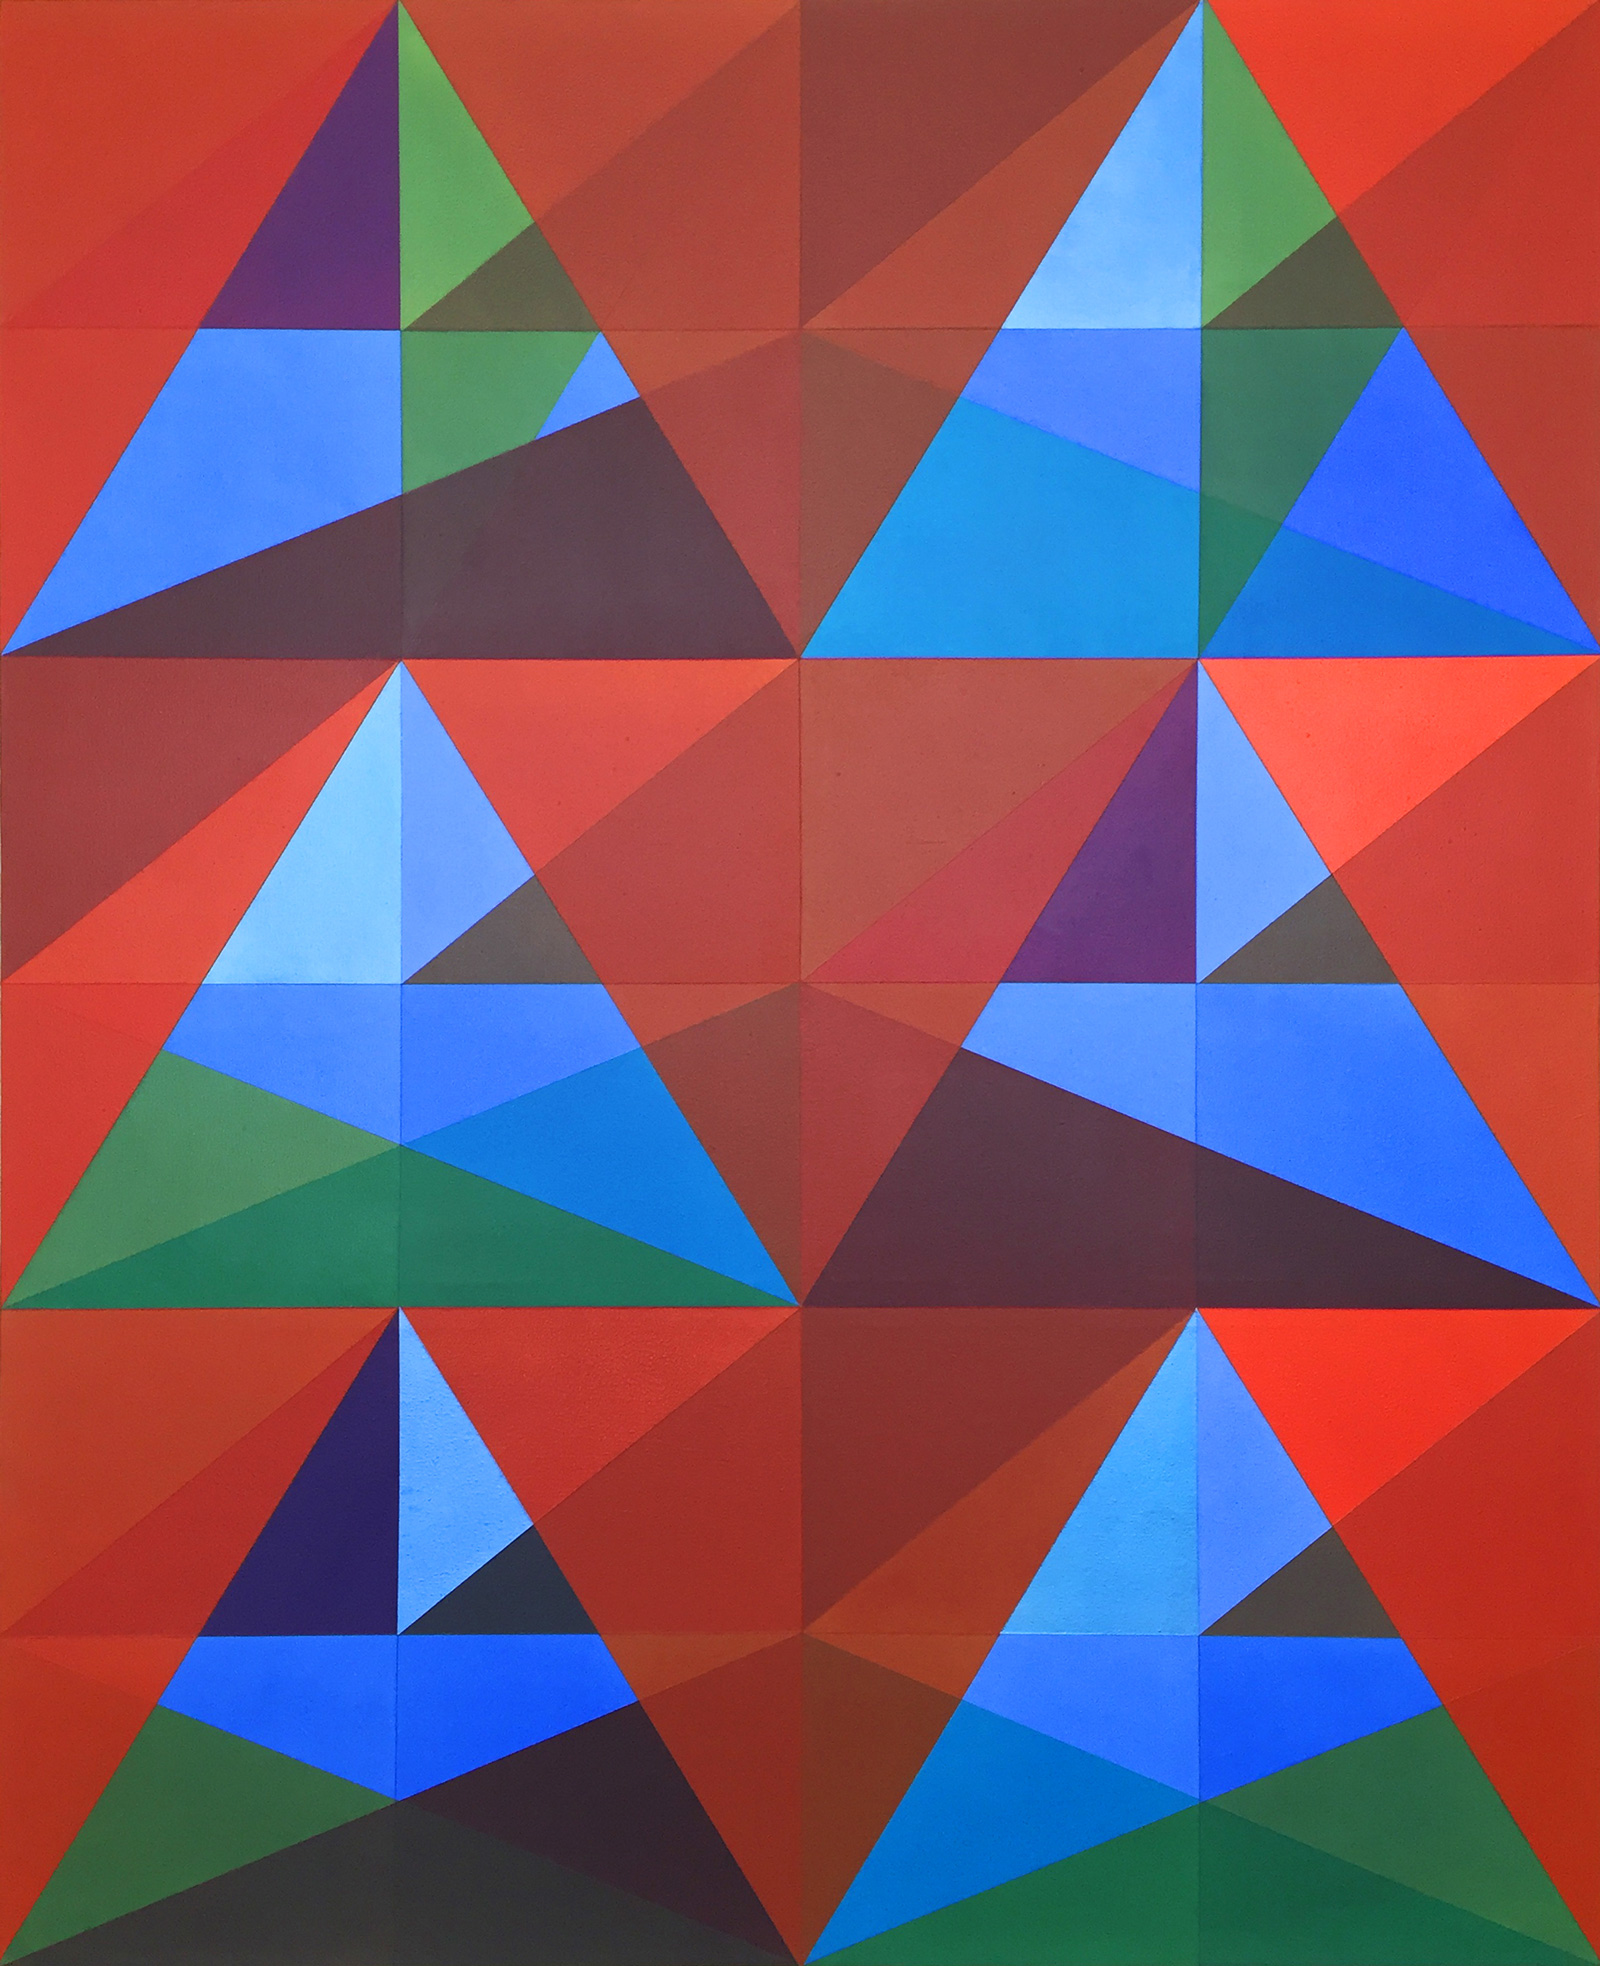 2016 Acrylic on Canvas 70 x 57 inches (177.8 x 144.8cm) - Marc Straus Gallery